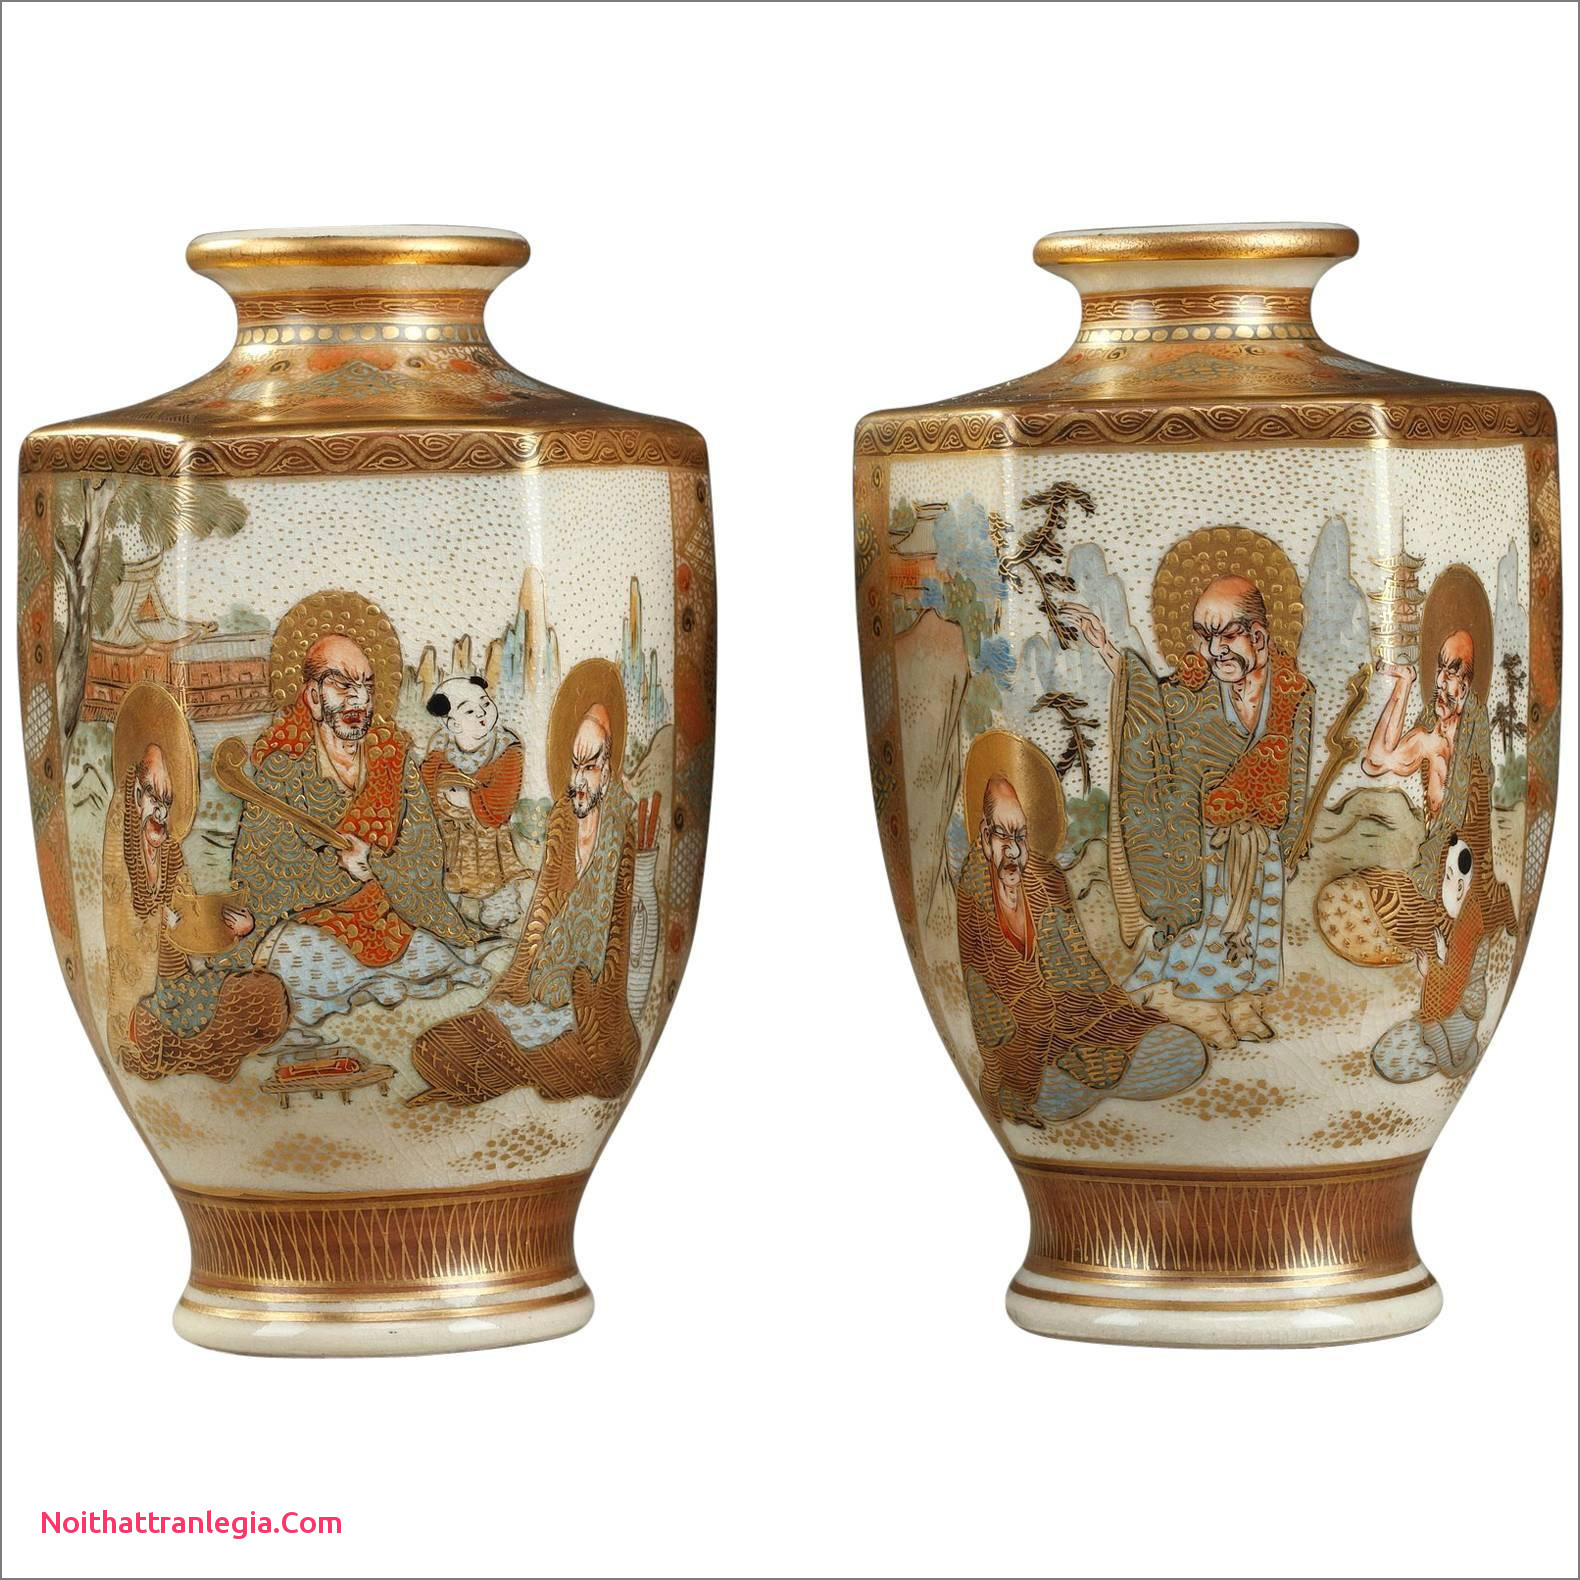 20 Cute Chinese Cloisonne Vase Value